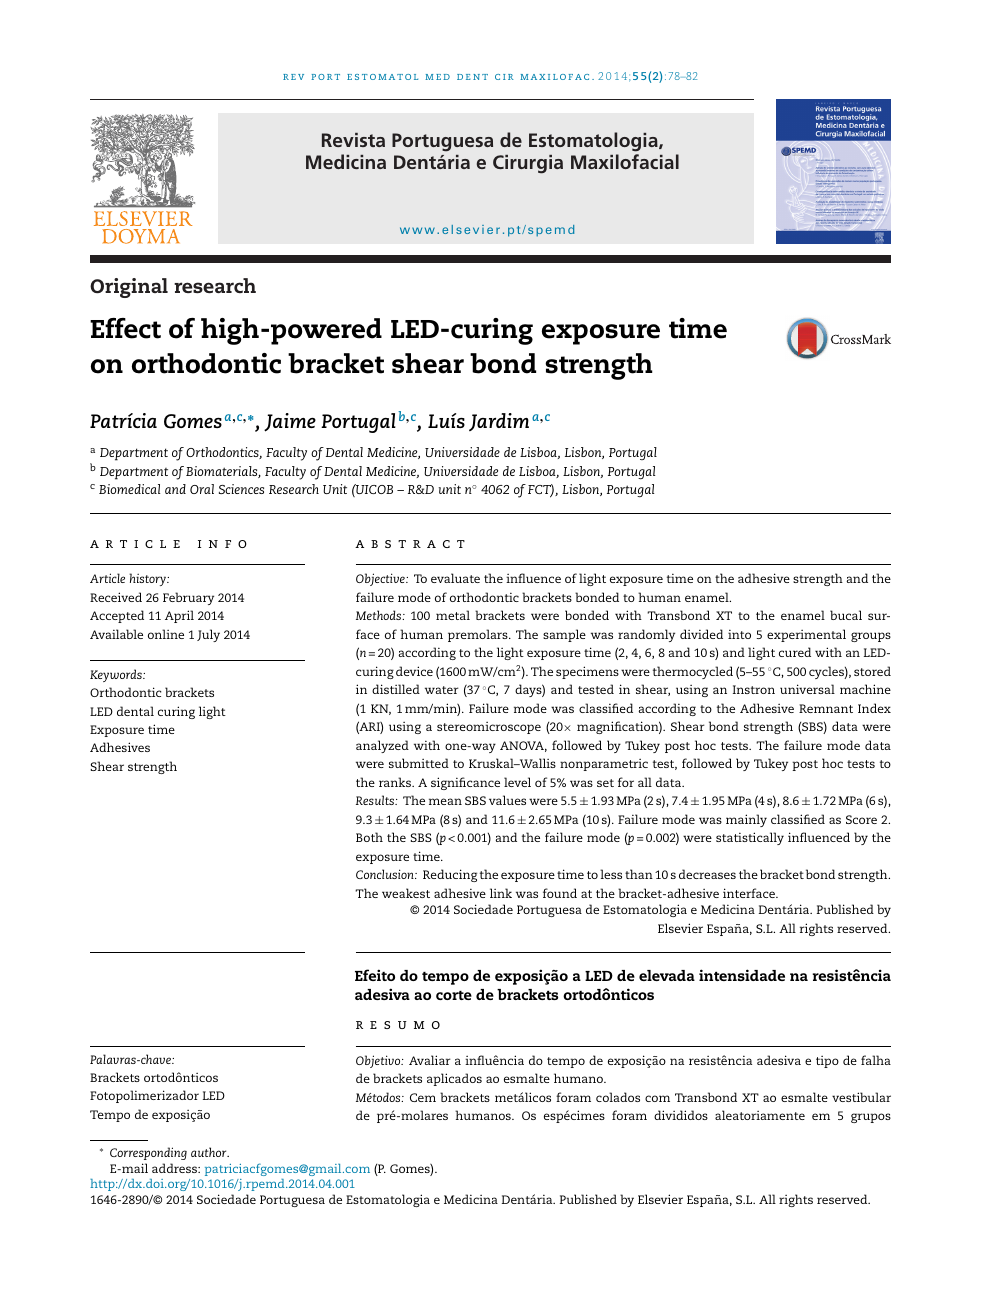 Effect of high-powered LED-curing exposure time on orthodontic